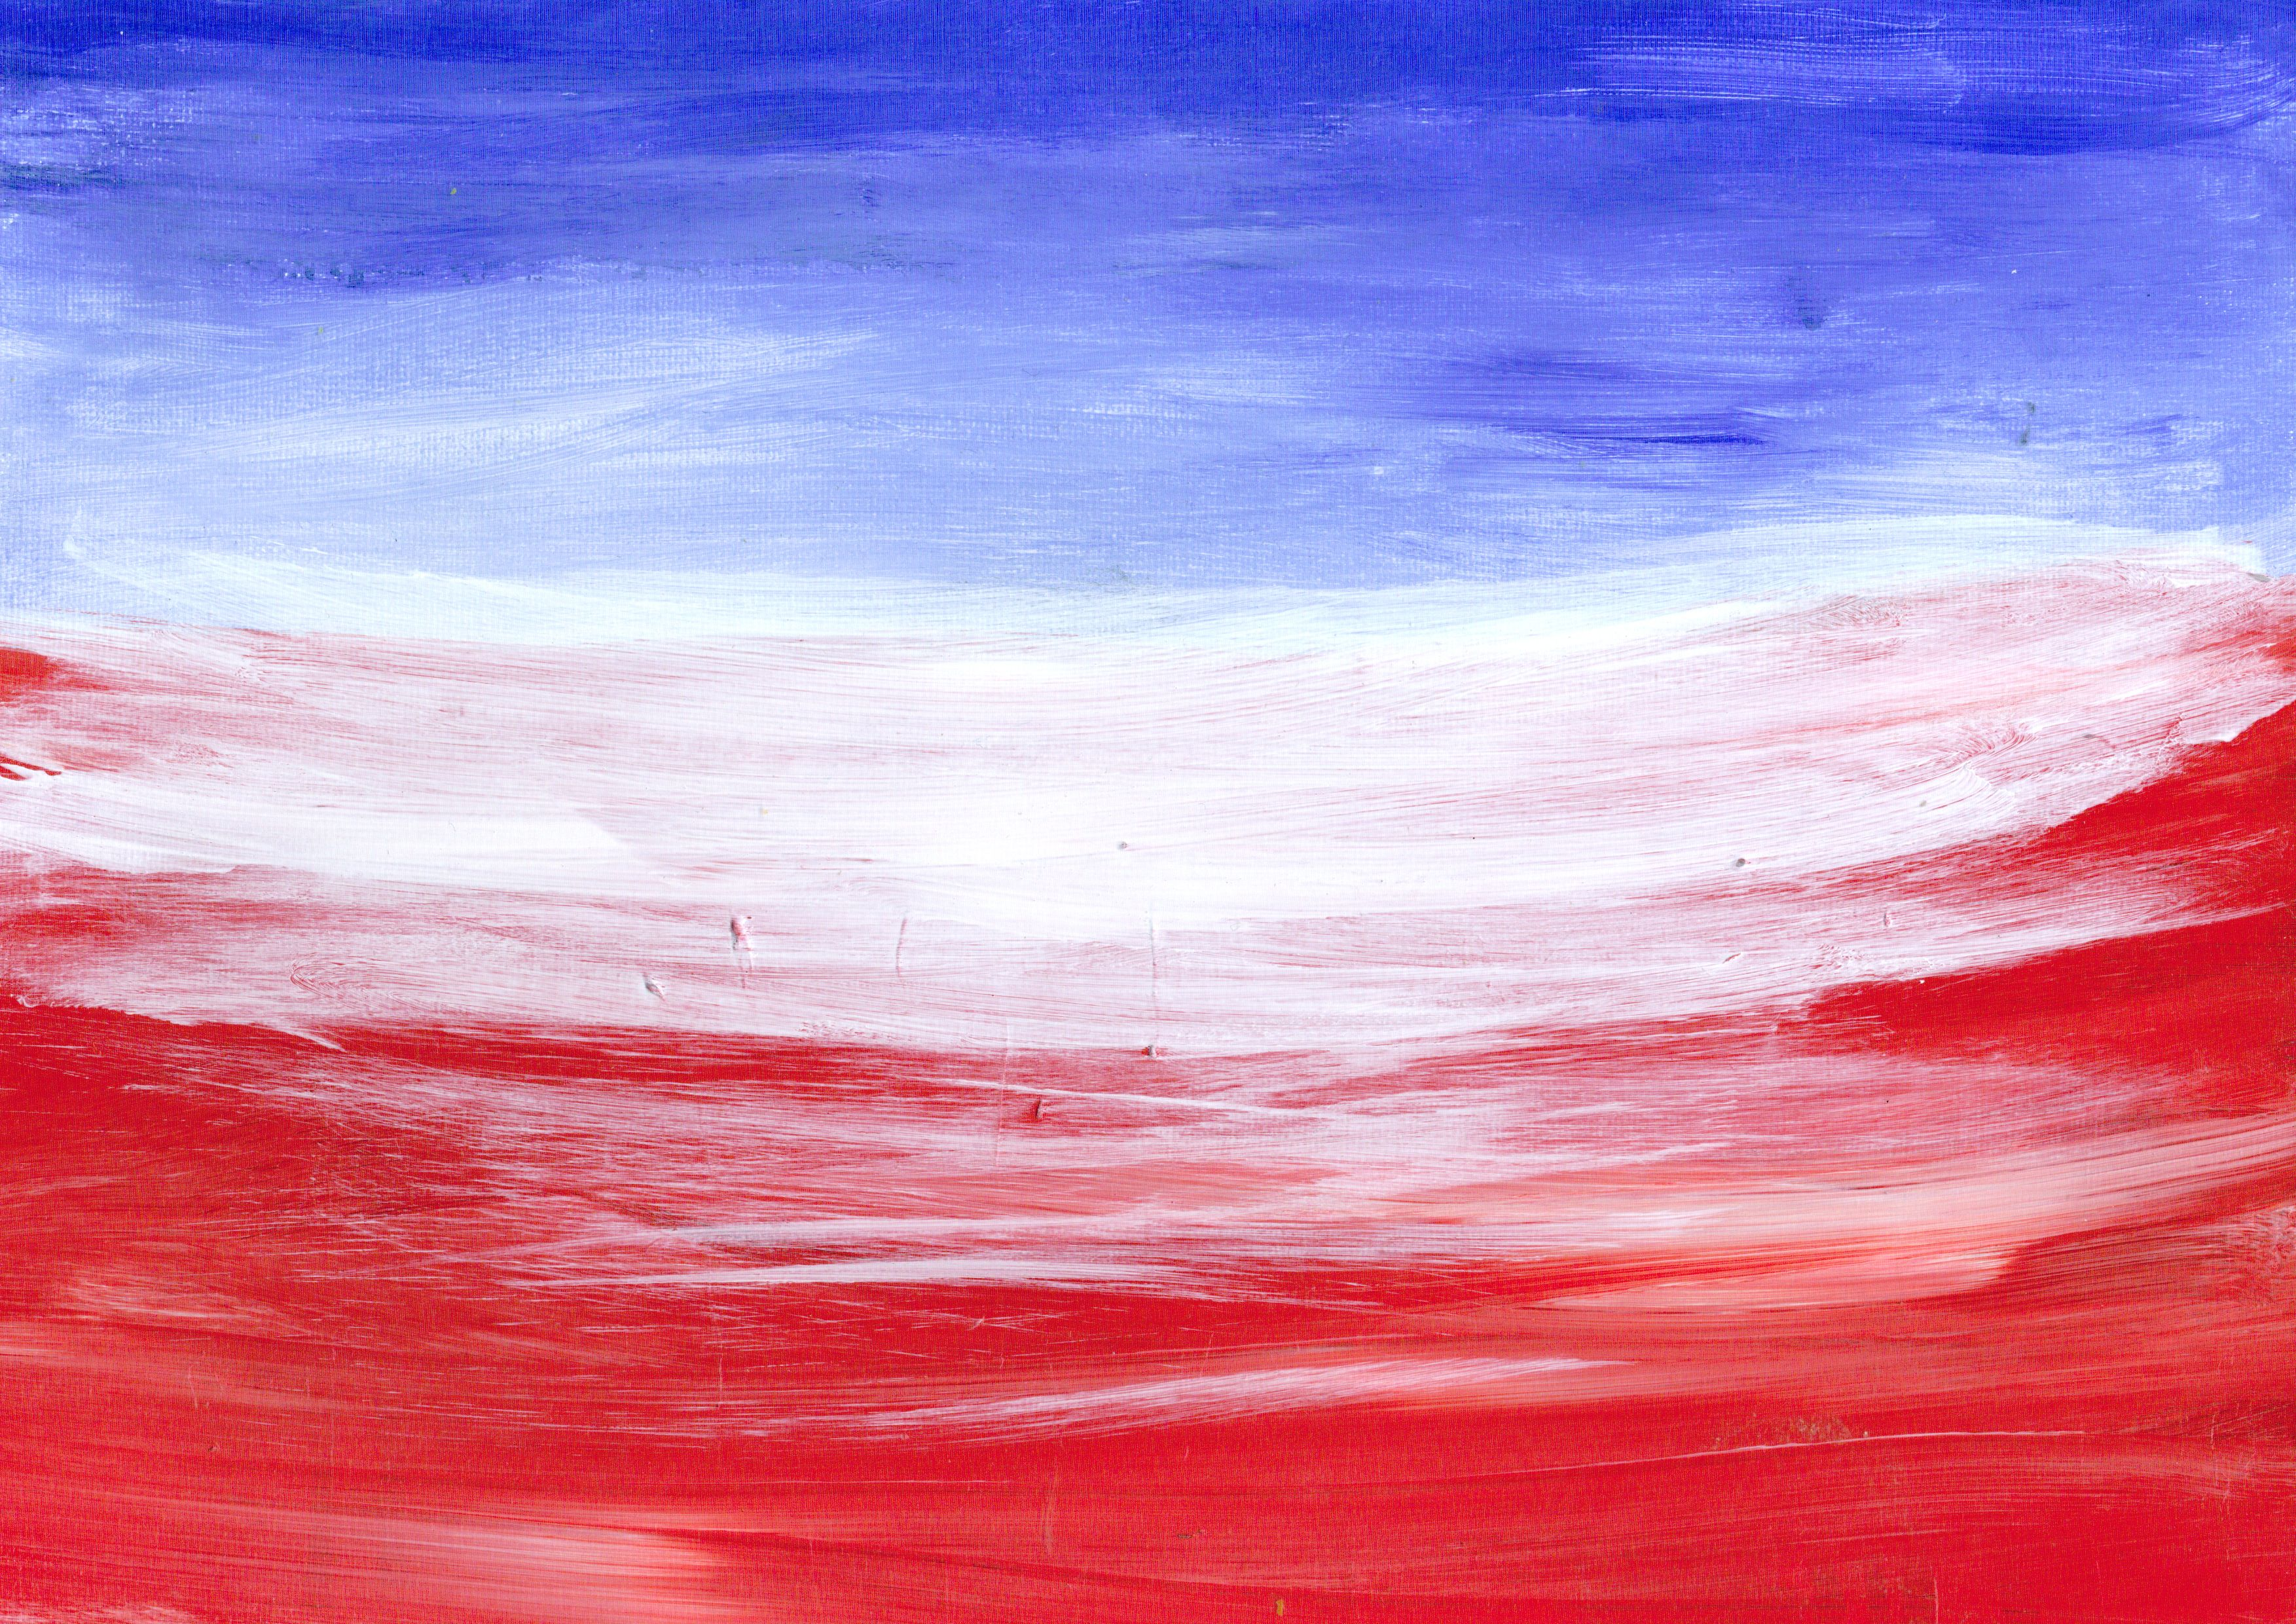 red, white and blue art - Google Search | Art - Abstract ...